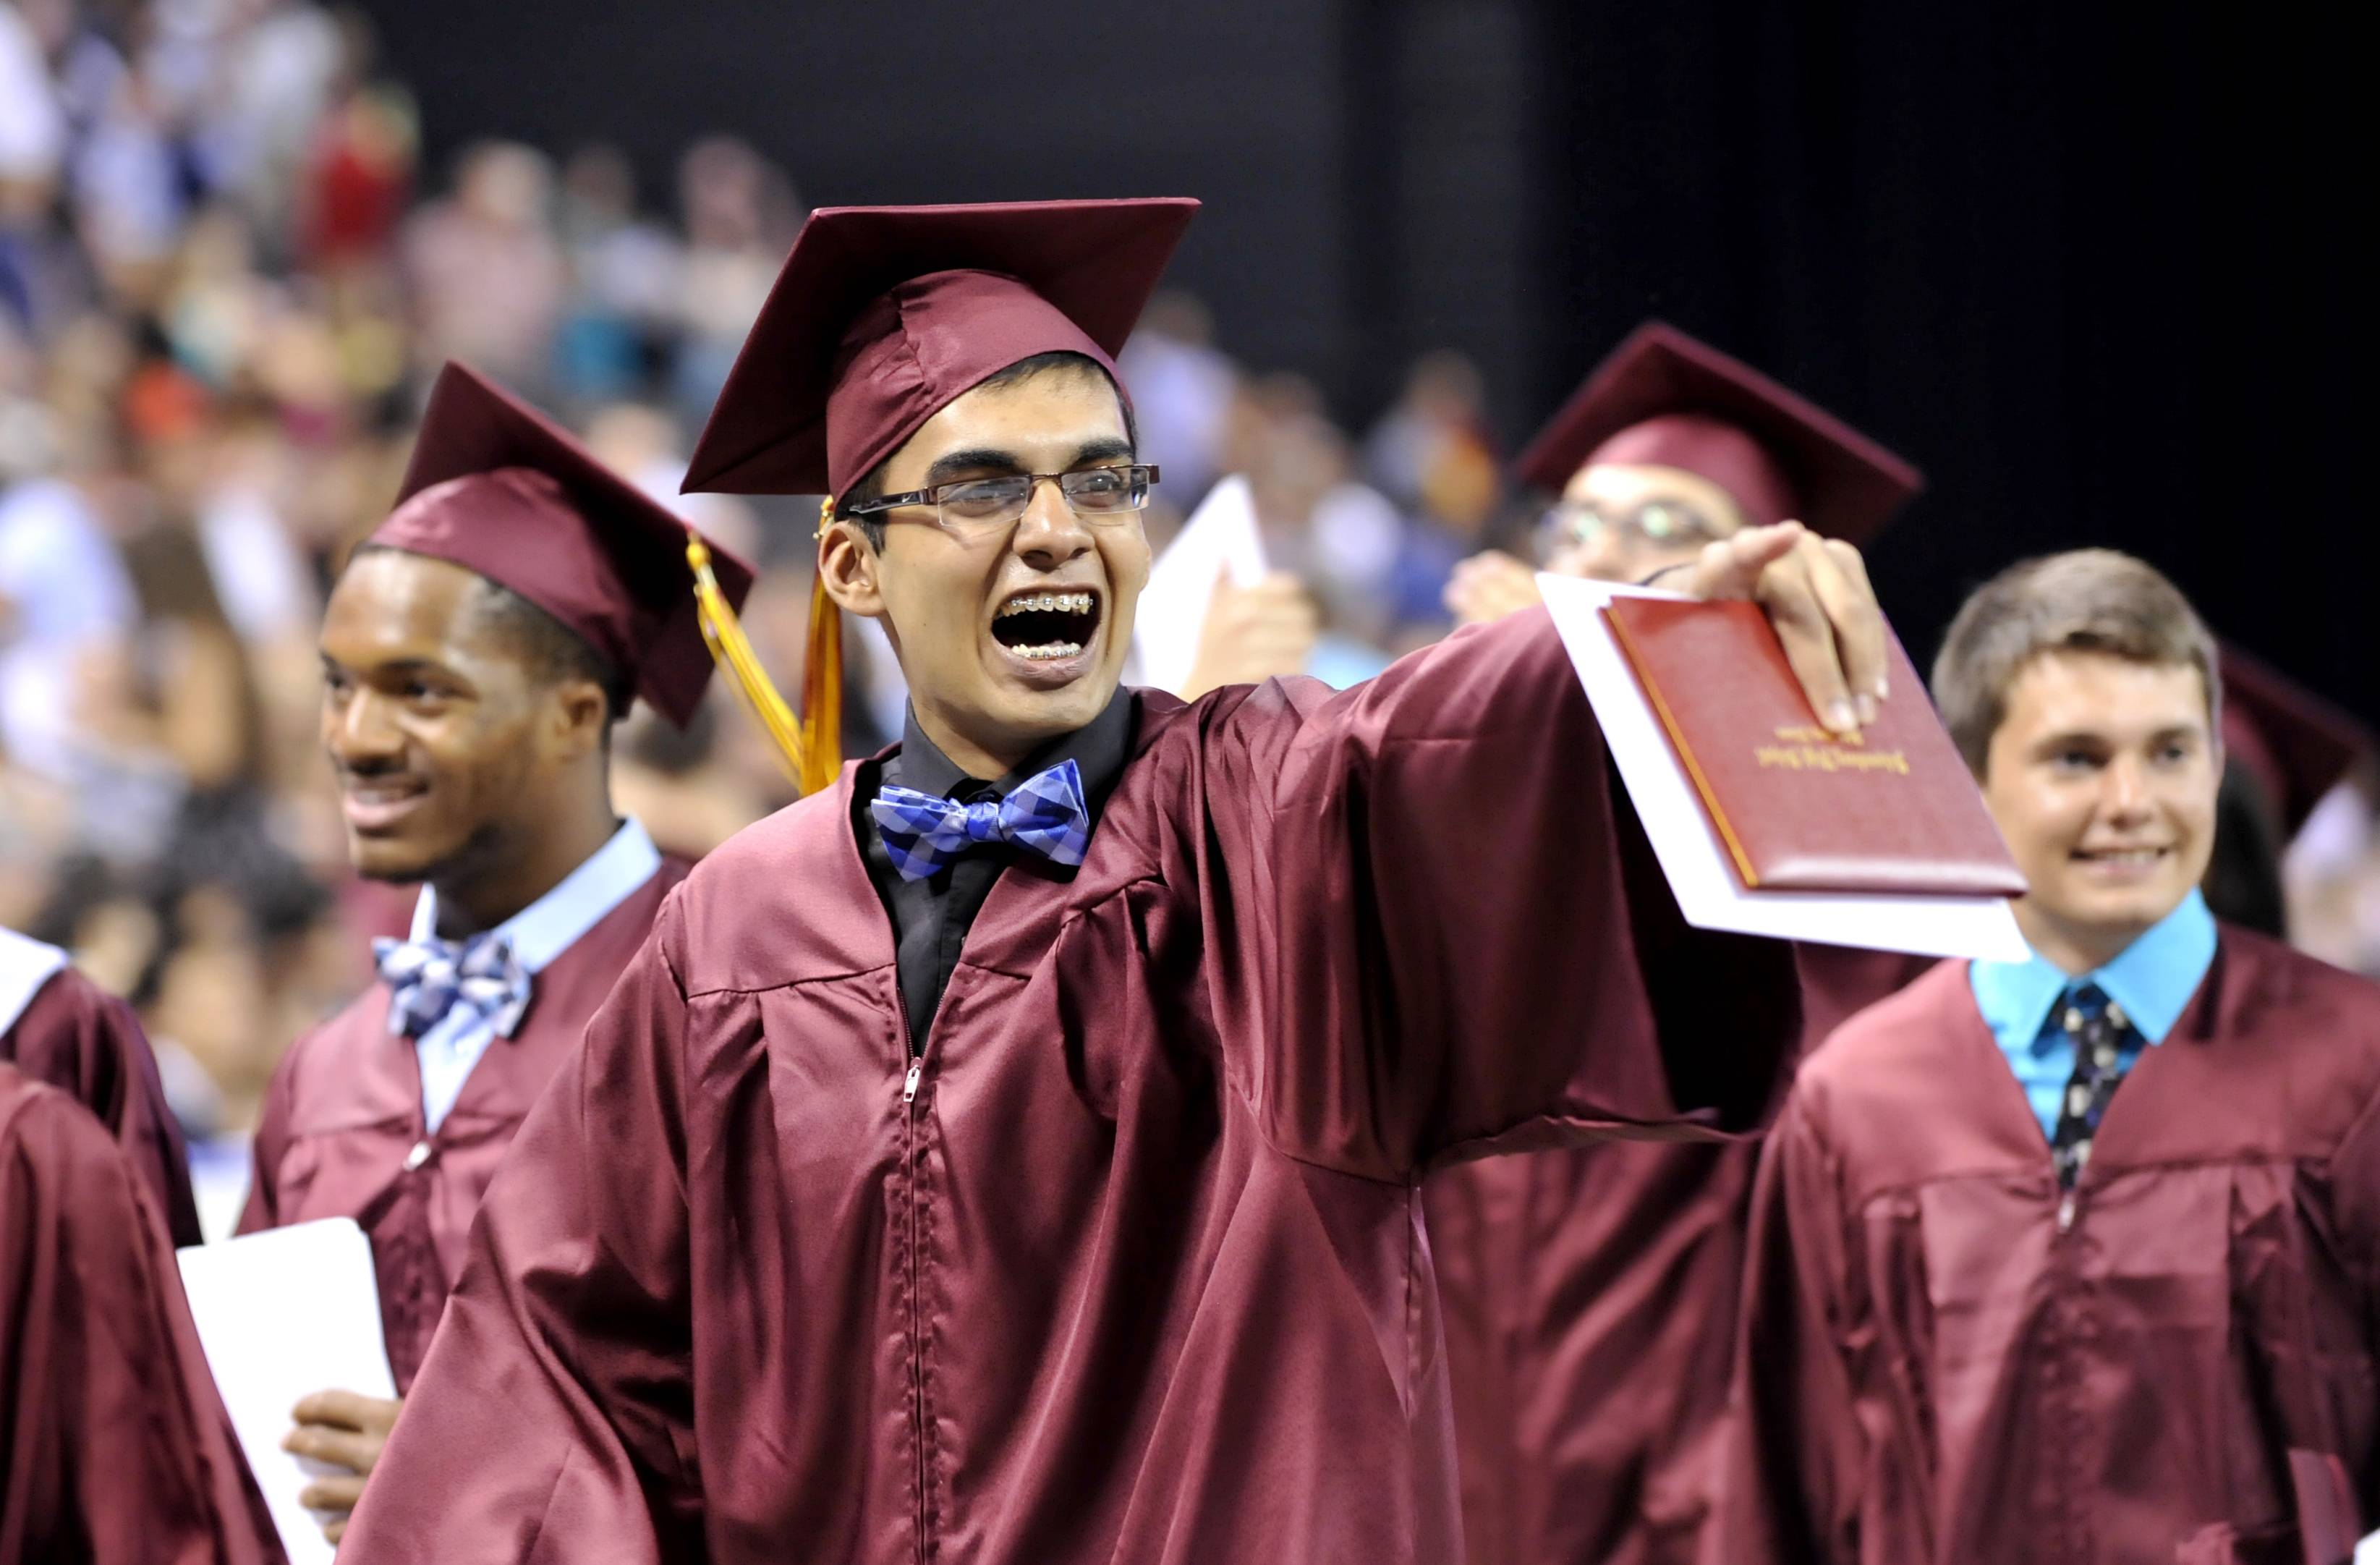 Param Patel cheers and yells at friends in the audience at the conclusion of the Schaumburg High School commencement at the Sears Centre in Hoffman Estates on Sunday, June 1.